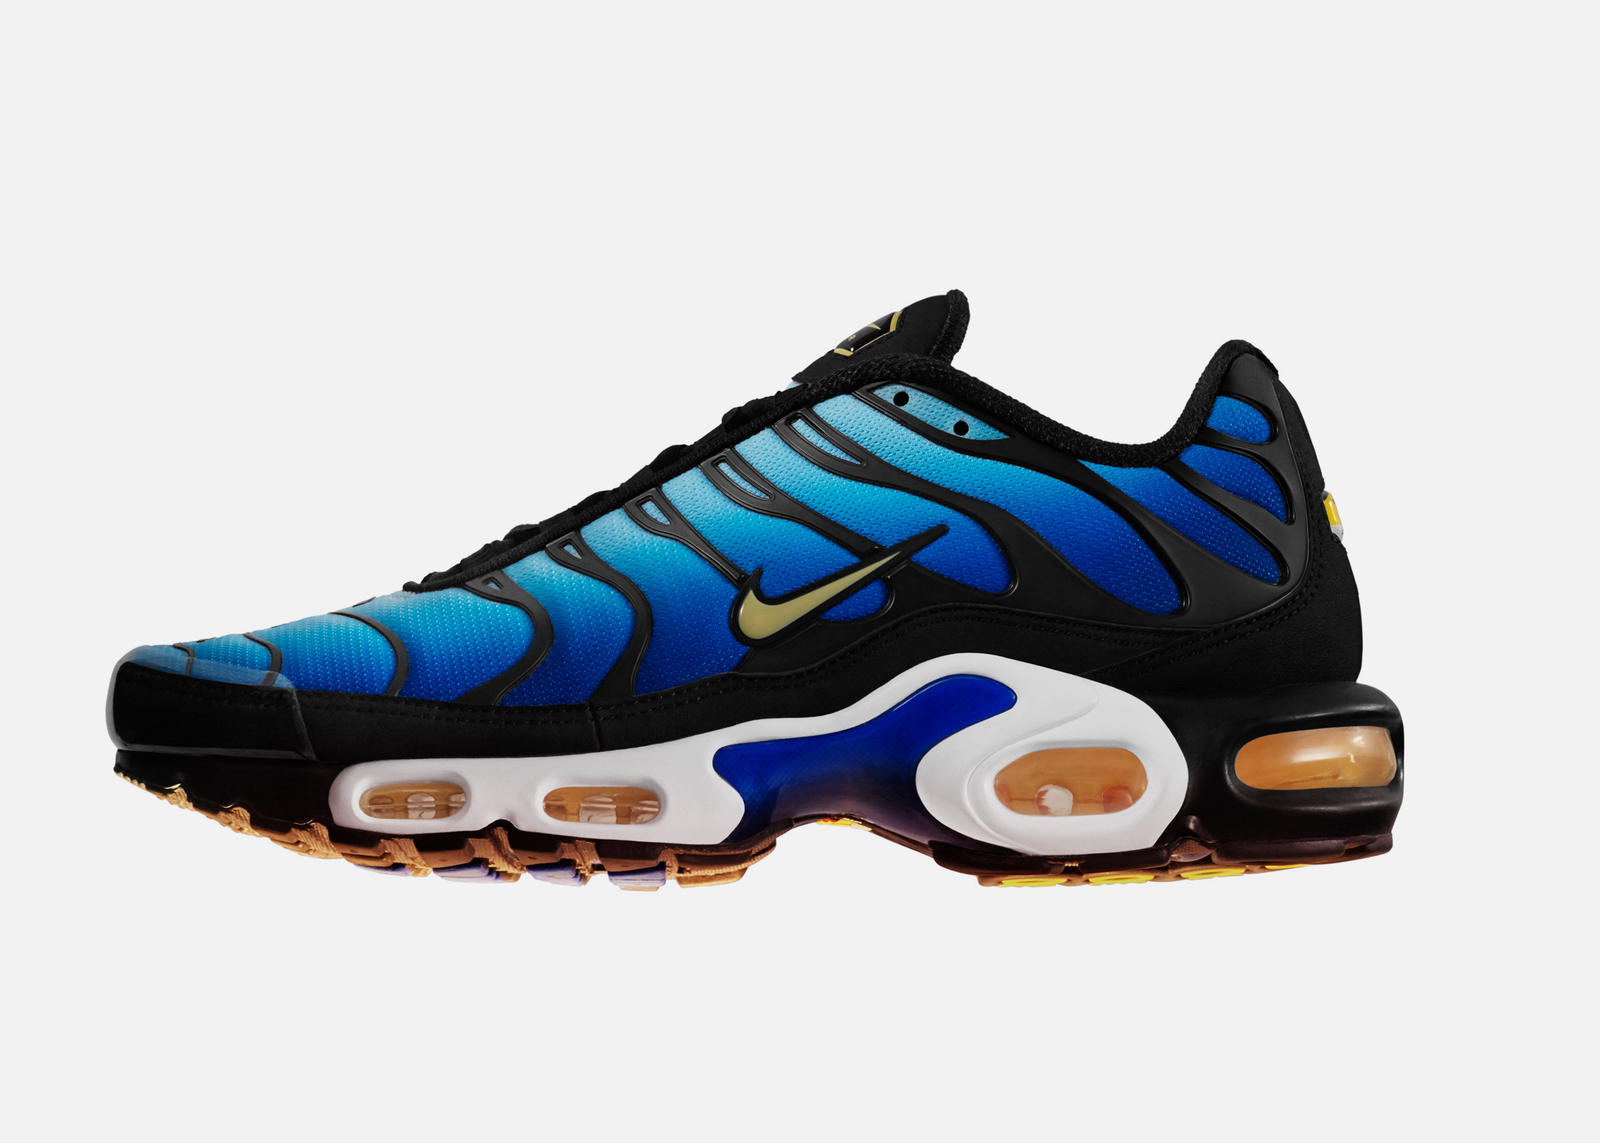 online retailer 2fe78 3a92e The Untold Story of the Nike Air Max Plus 20